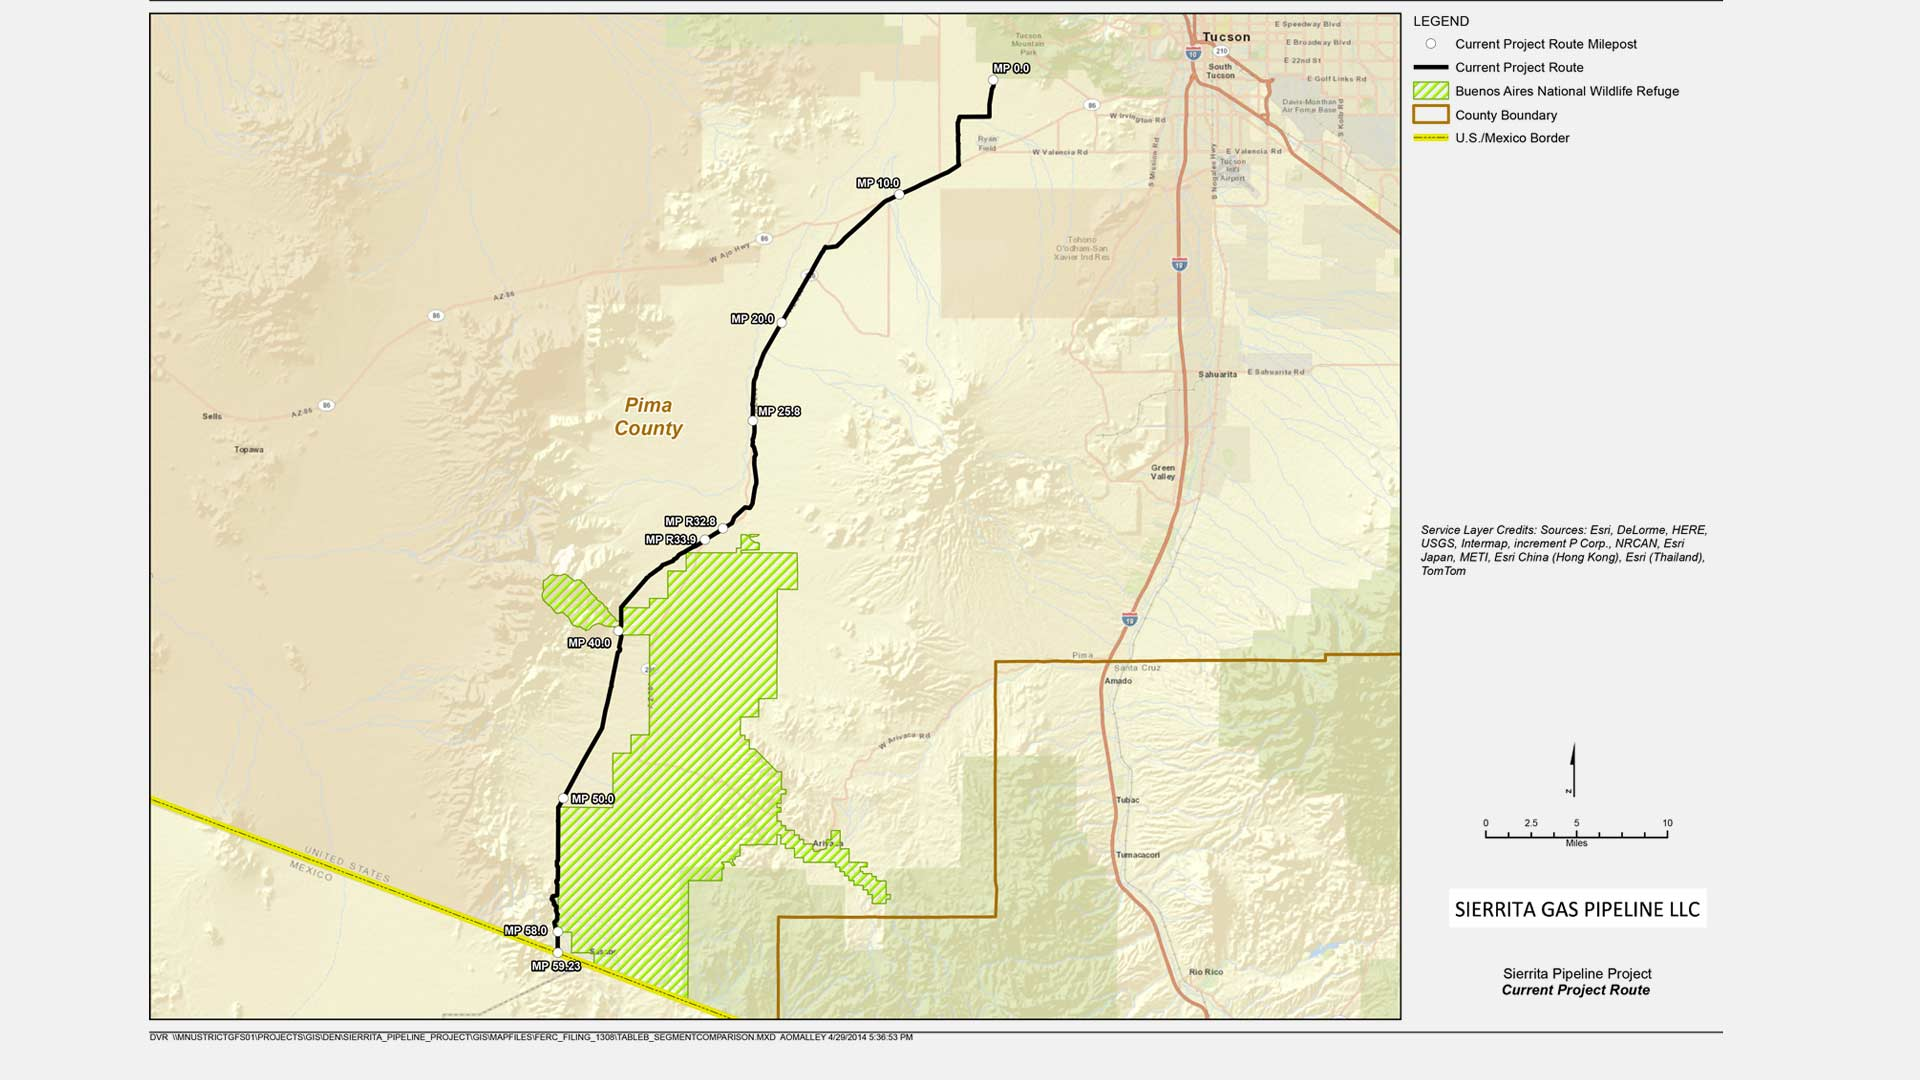 A map of the Sierrita Gas Pipeline from Tucson to the U.S.-Mexico border near Sasabe.